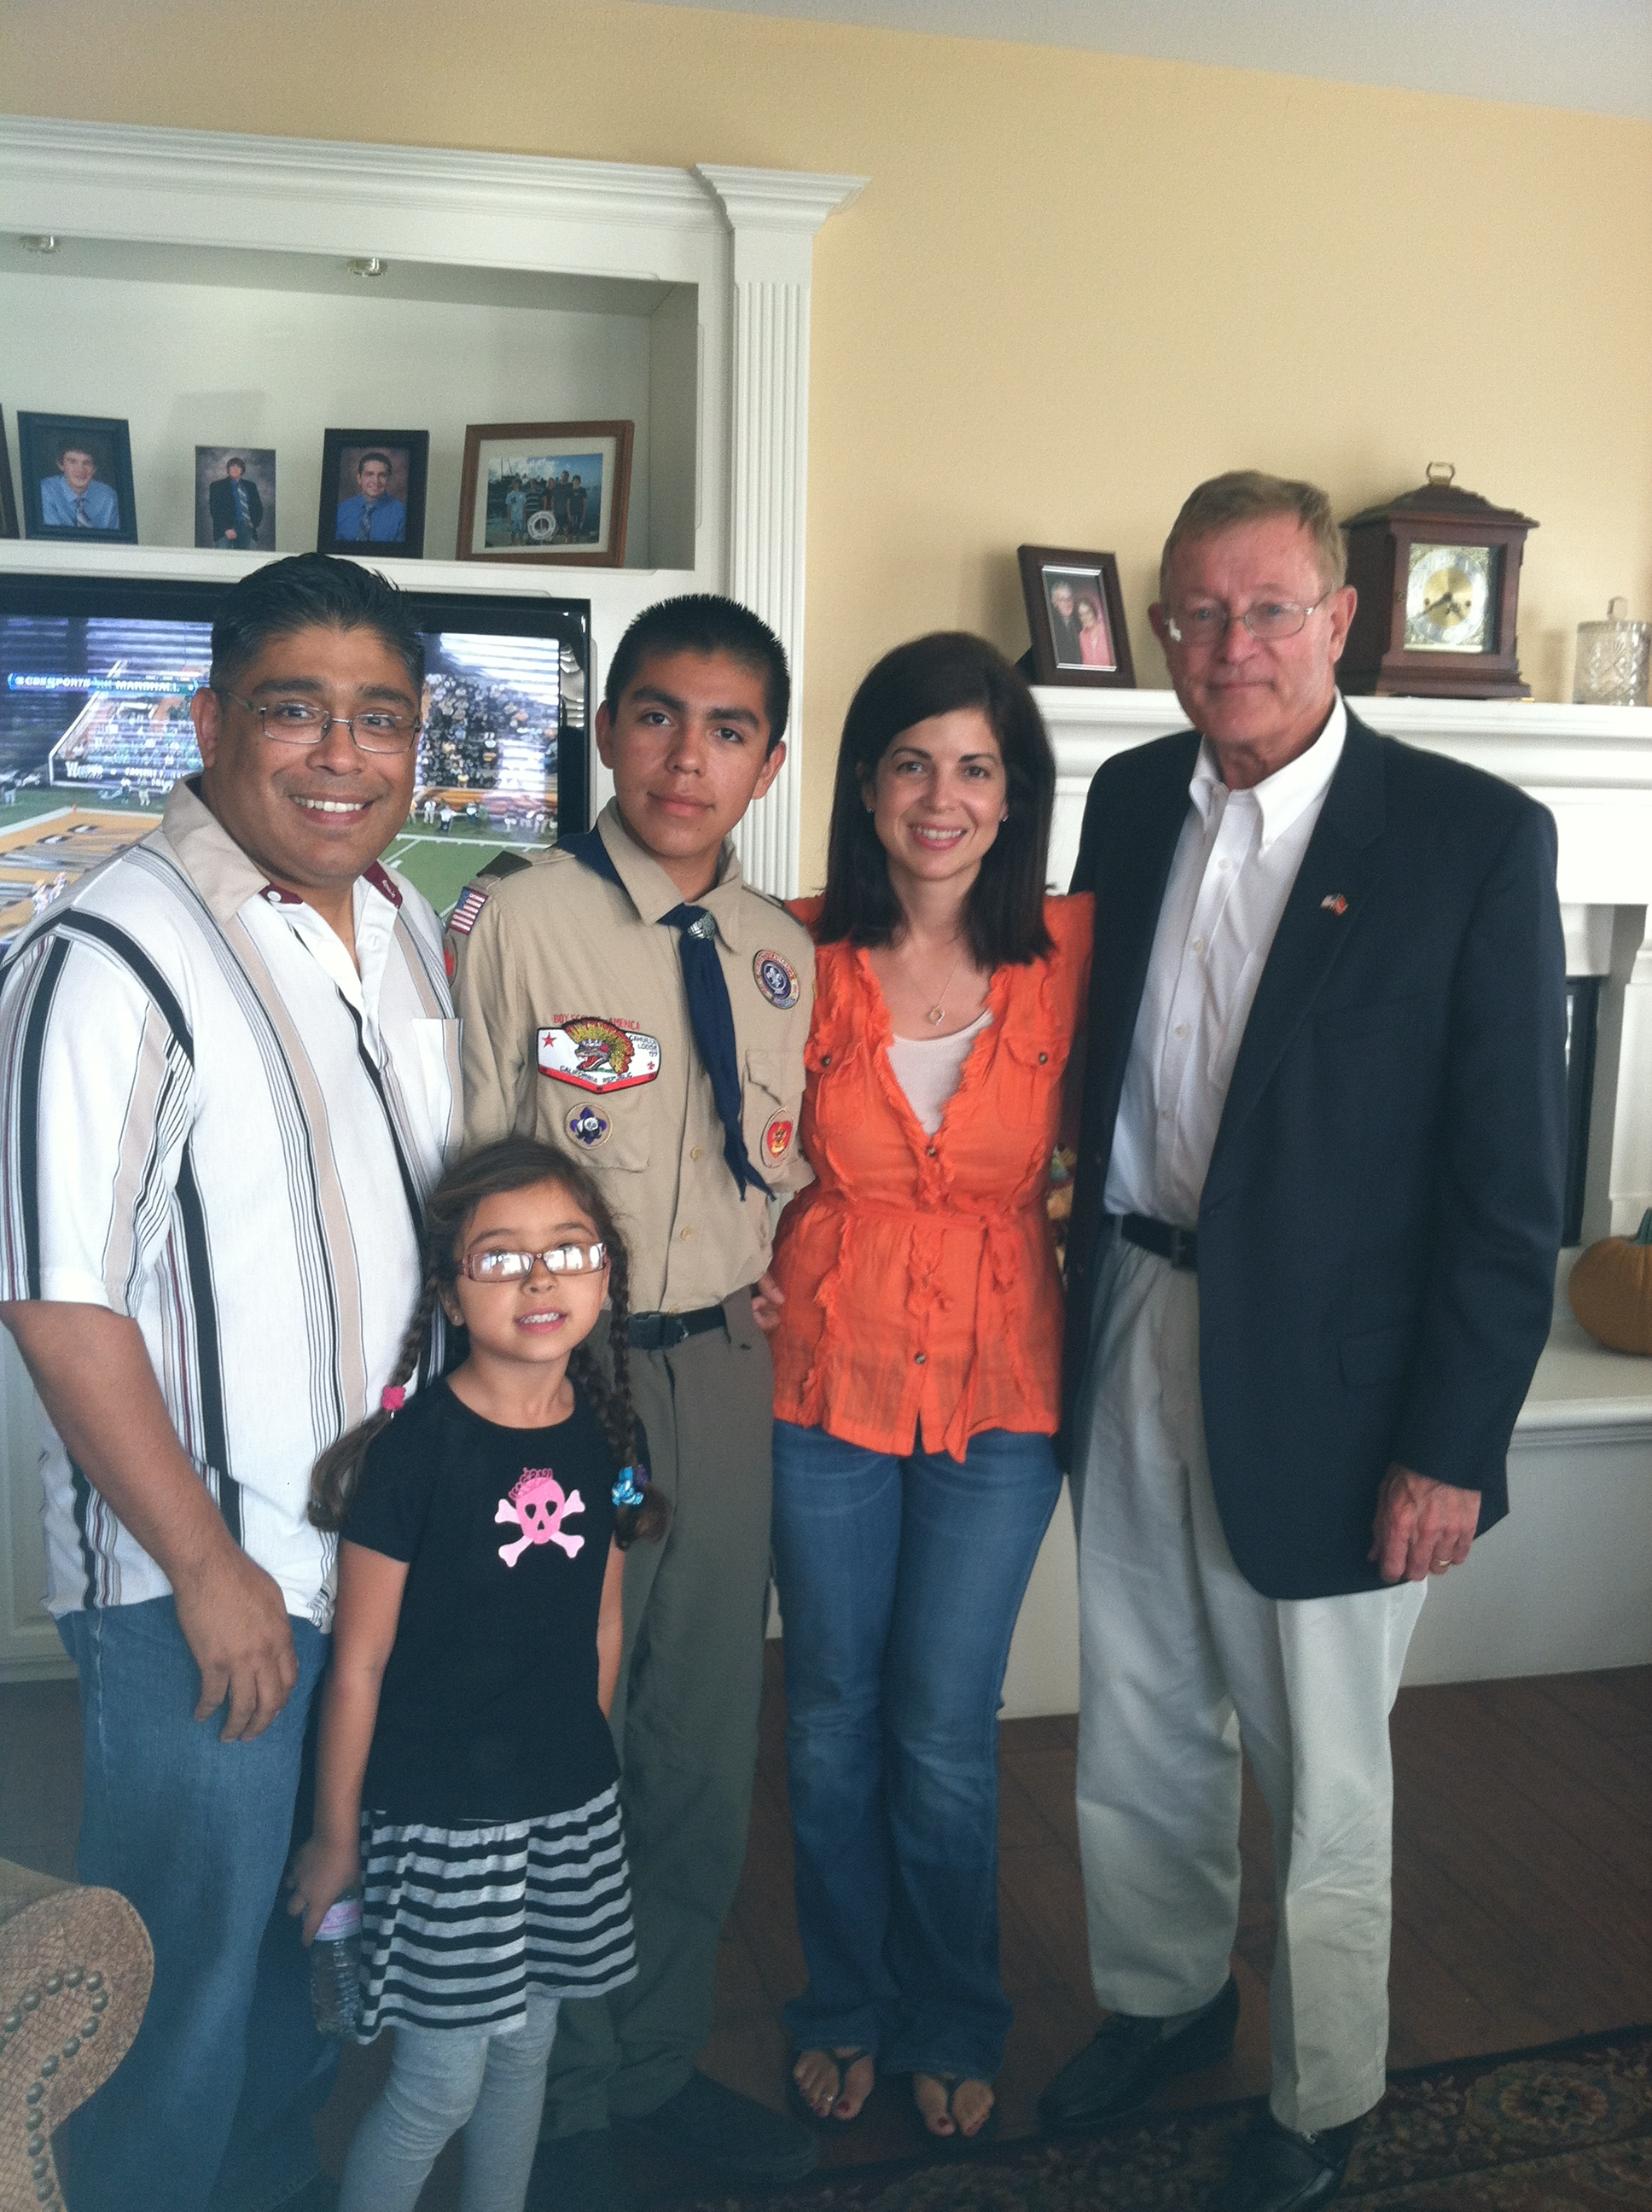 Samaniego's Support Col. Paul Cook for Congress